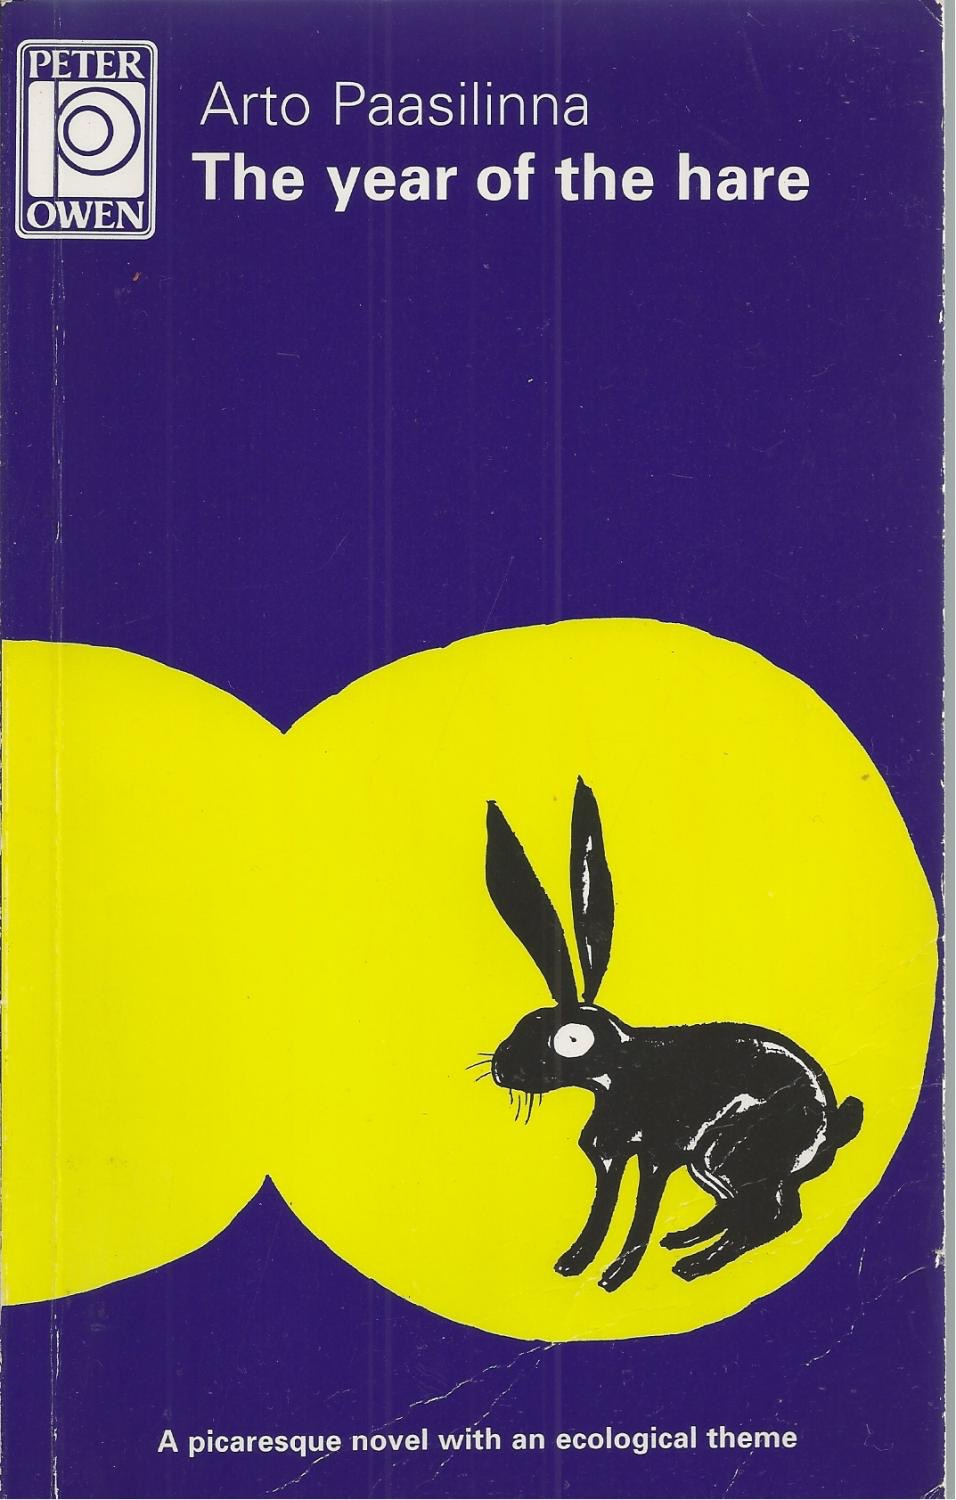 Year Of The Hare A Picaresque Novel With An Ecological Theme _ ARTO PAASILINNA